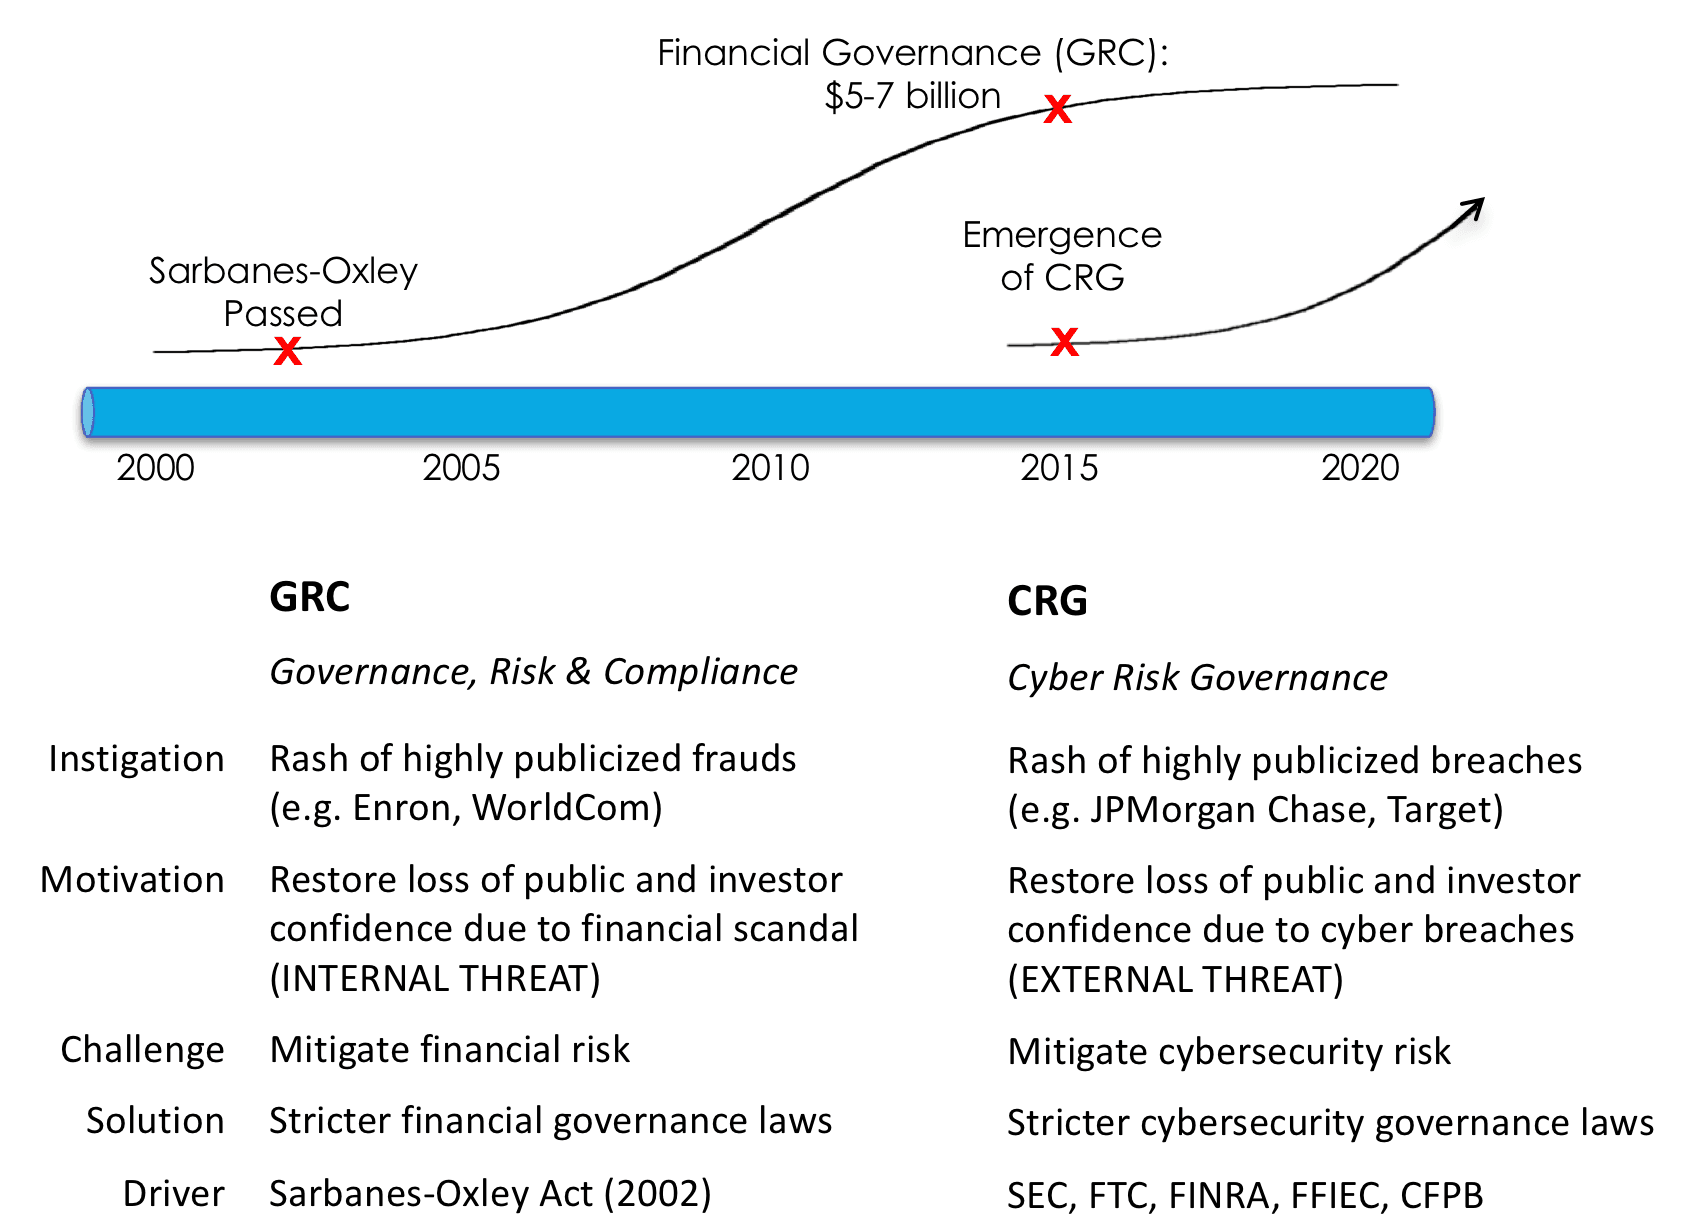 Governance, Risk and Compliance versus Cyber Risk Governance